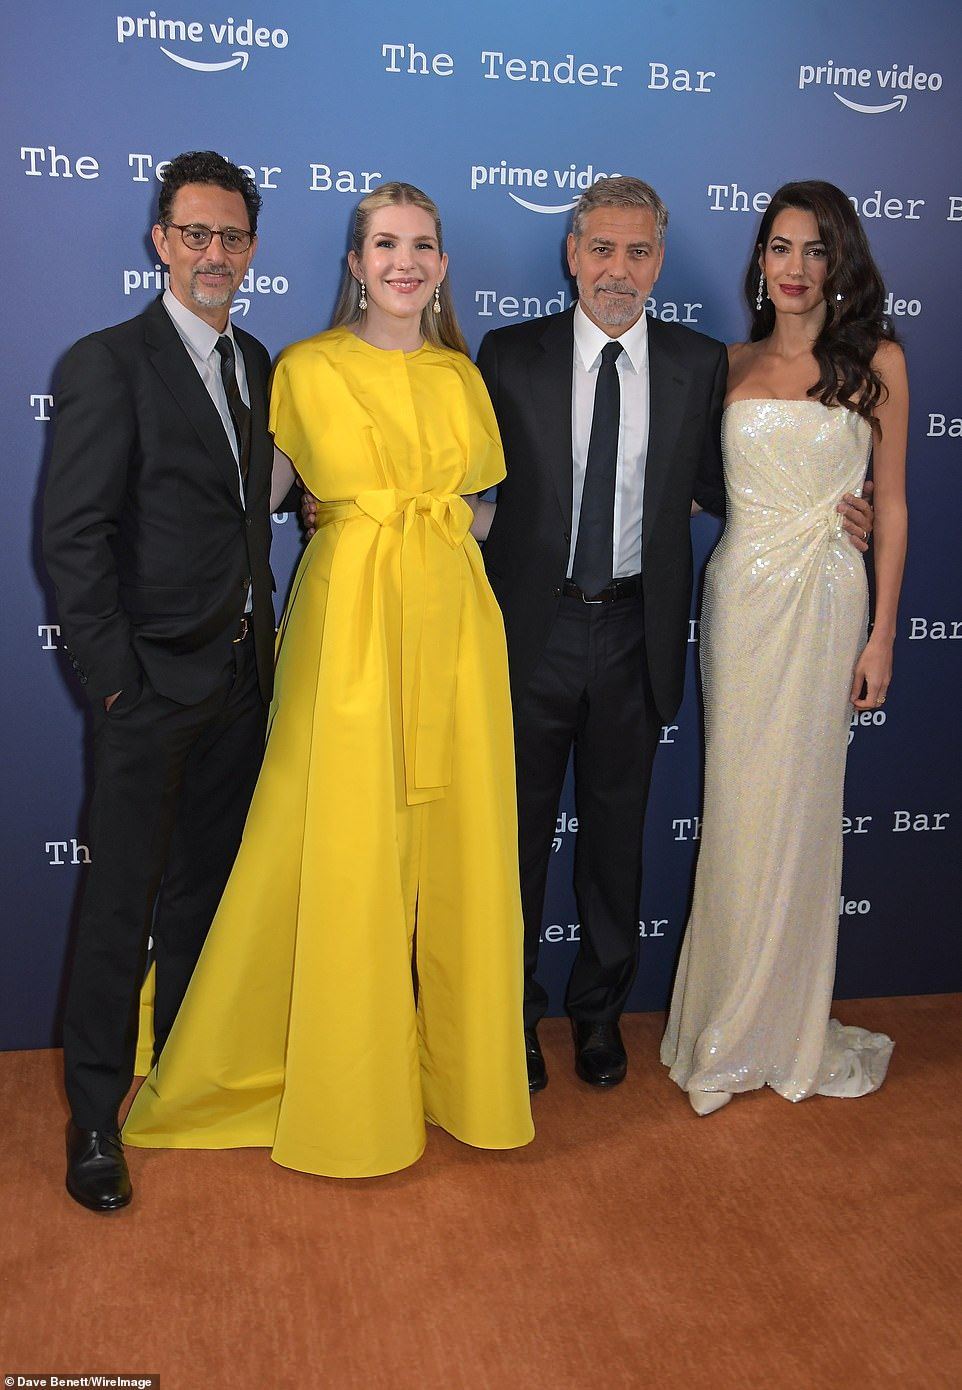 Dapper: The Oceans Eight actor looked suave in a black suit while his stunning wife Amal (far right) was a vision in a beautiful strapless white gown adorned with sequins